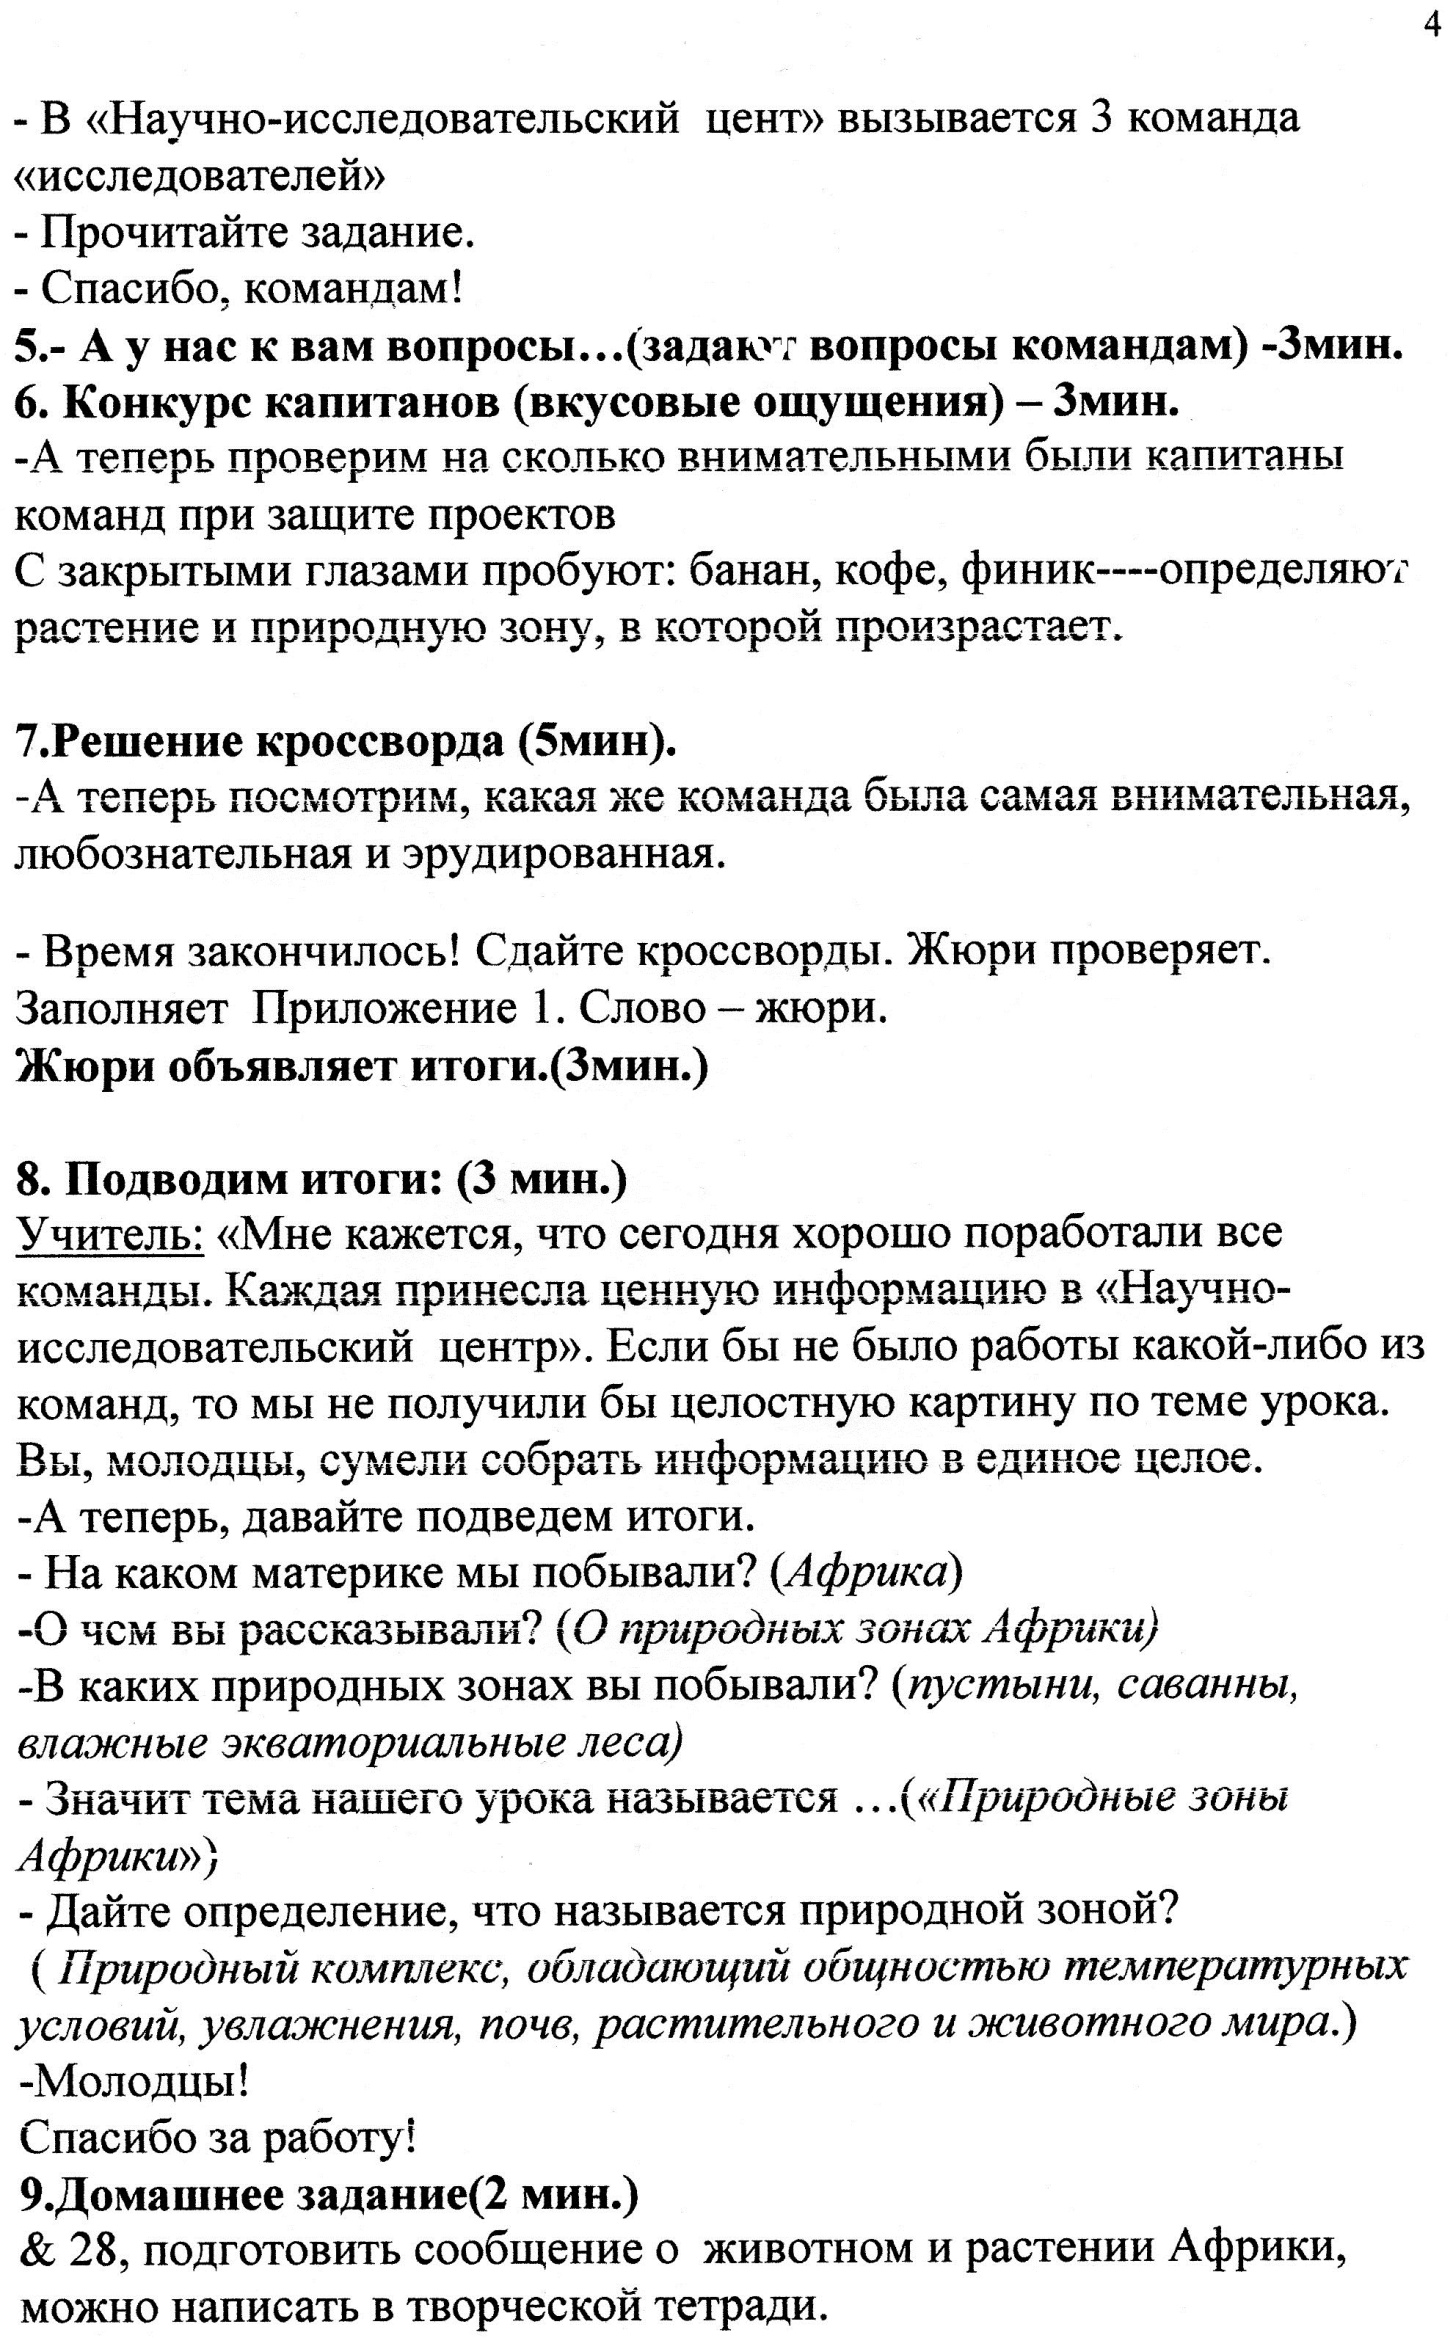 C:\Users\ПАВЕЛ\Pictures\img006.jpg